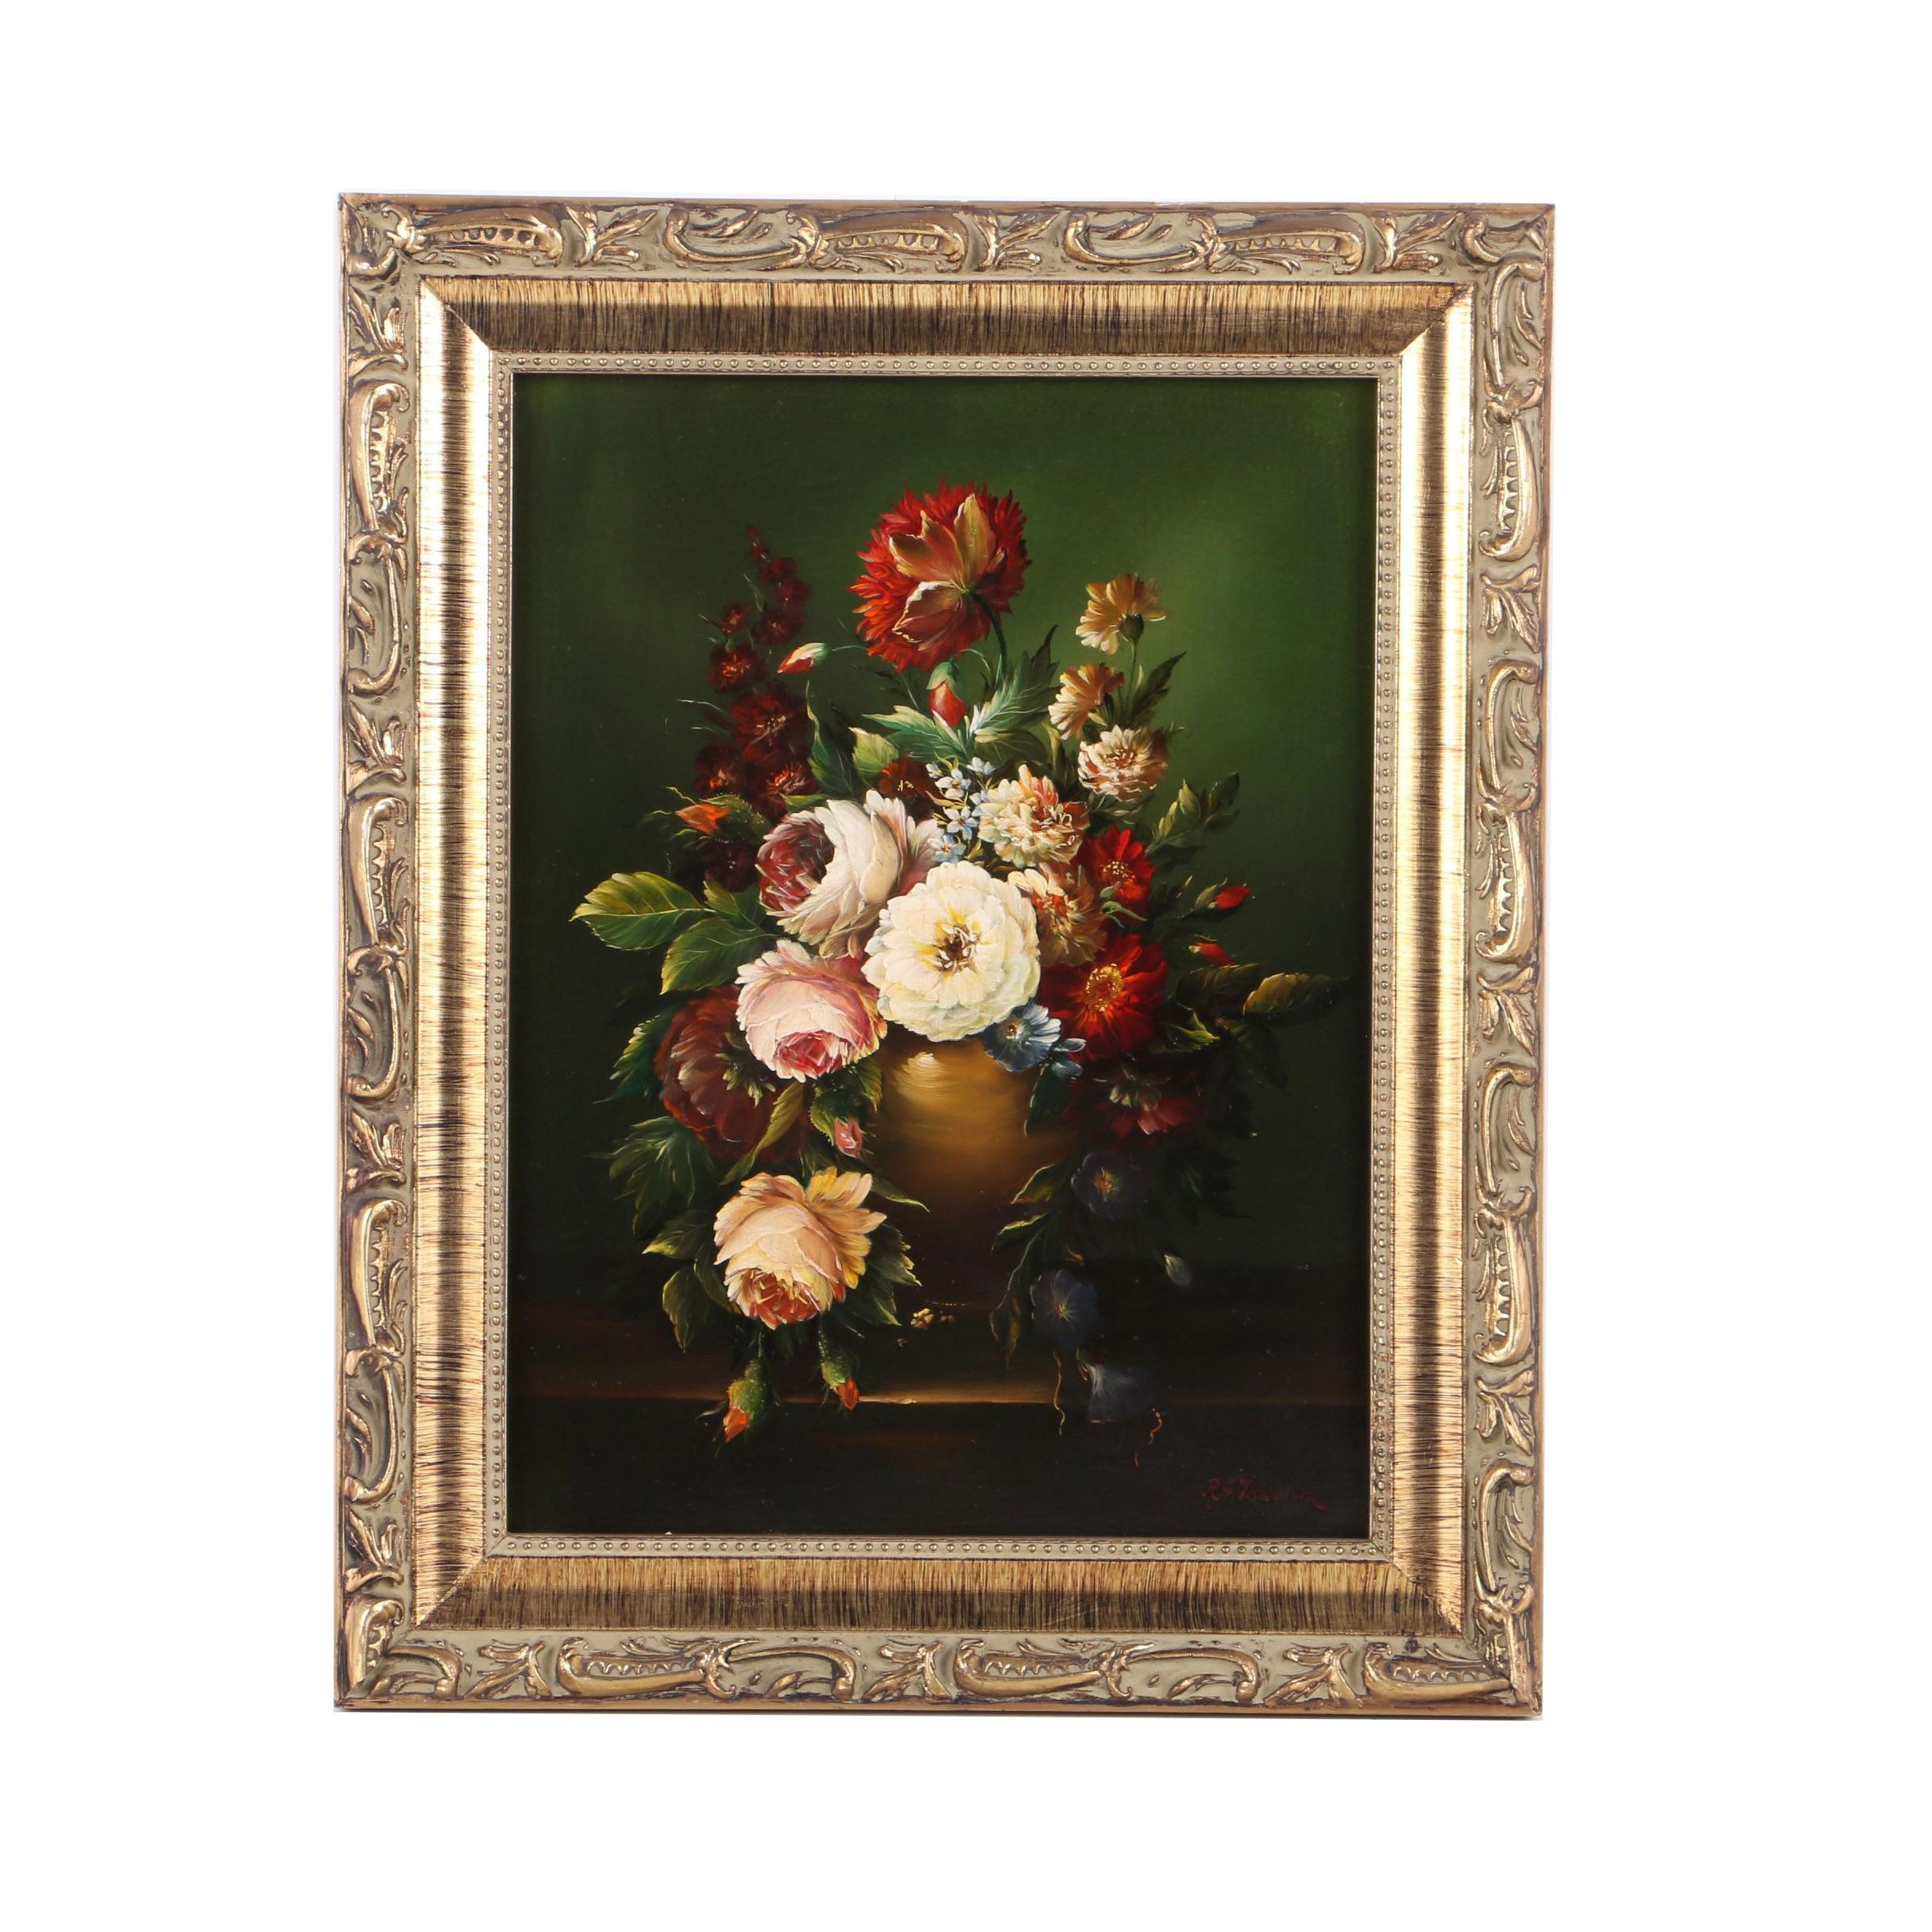 Reine Josephine Thieblin Oil Painting on Panel Floral Still Life